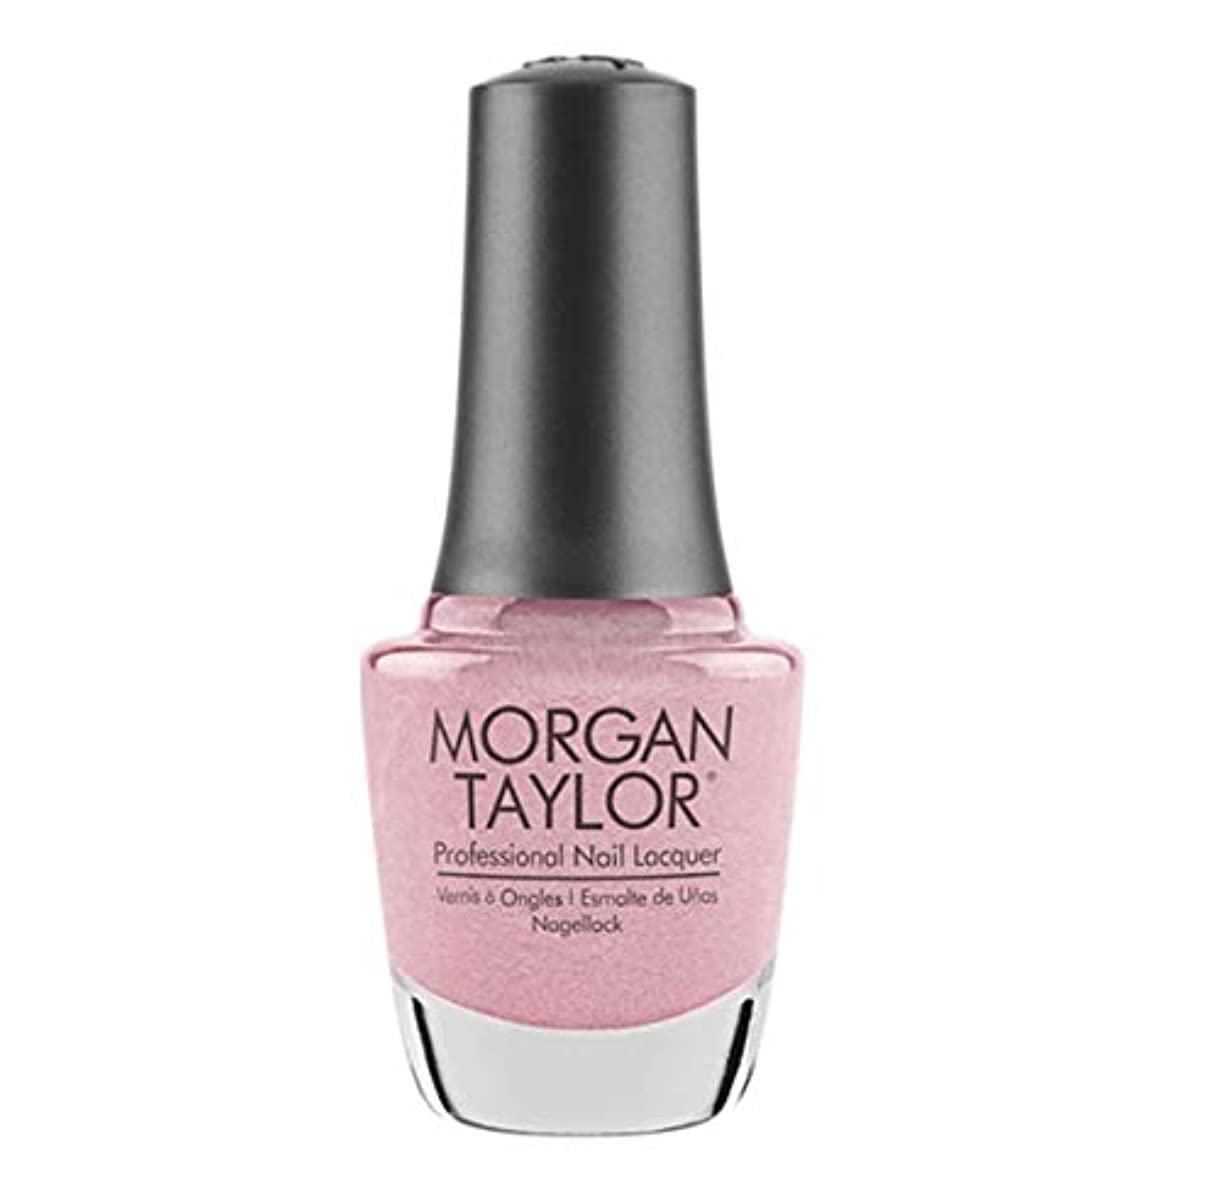 Morgan Taylor Nail Lacquer - Follow The Petals - 15 ml / 0.5 oz